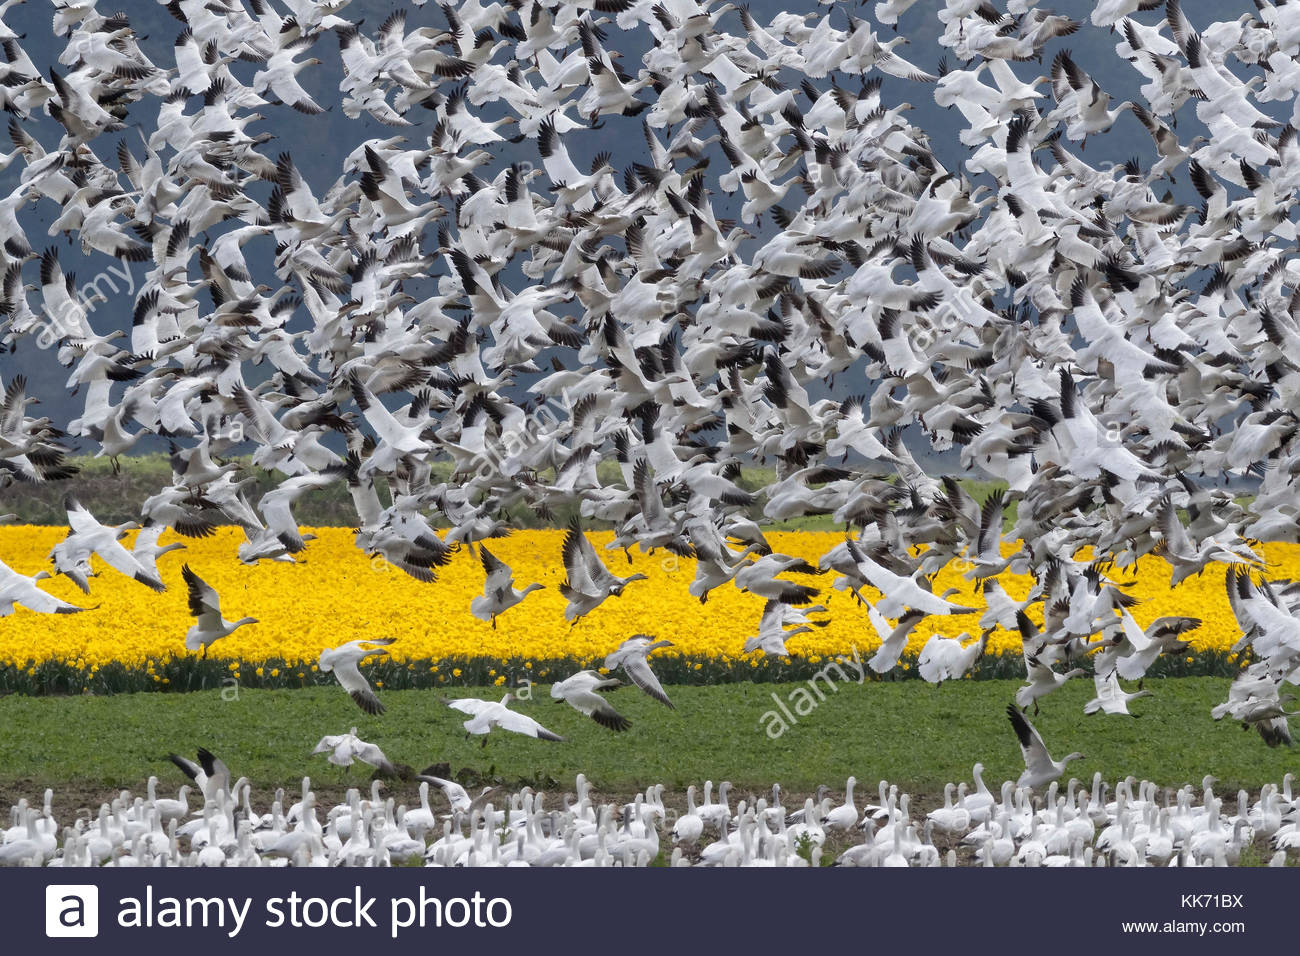 A large flock of snow geese (Chen caerulescens) erupts from a field of daffodils in La Conner, Washington. - Stock Image